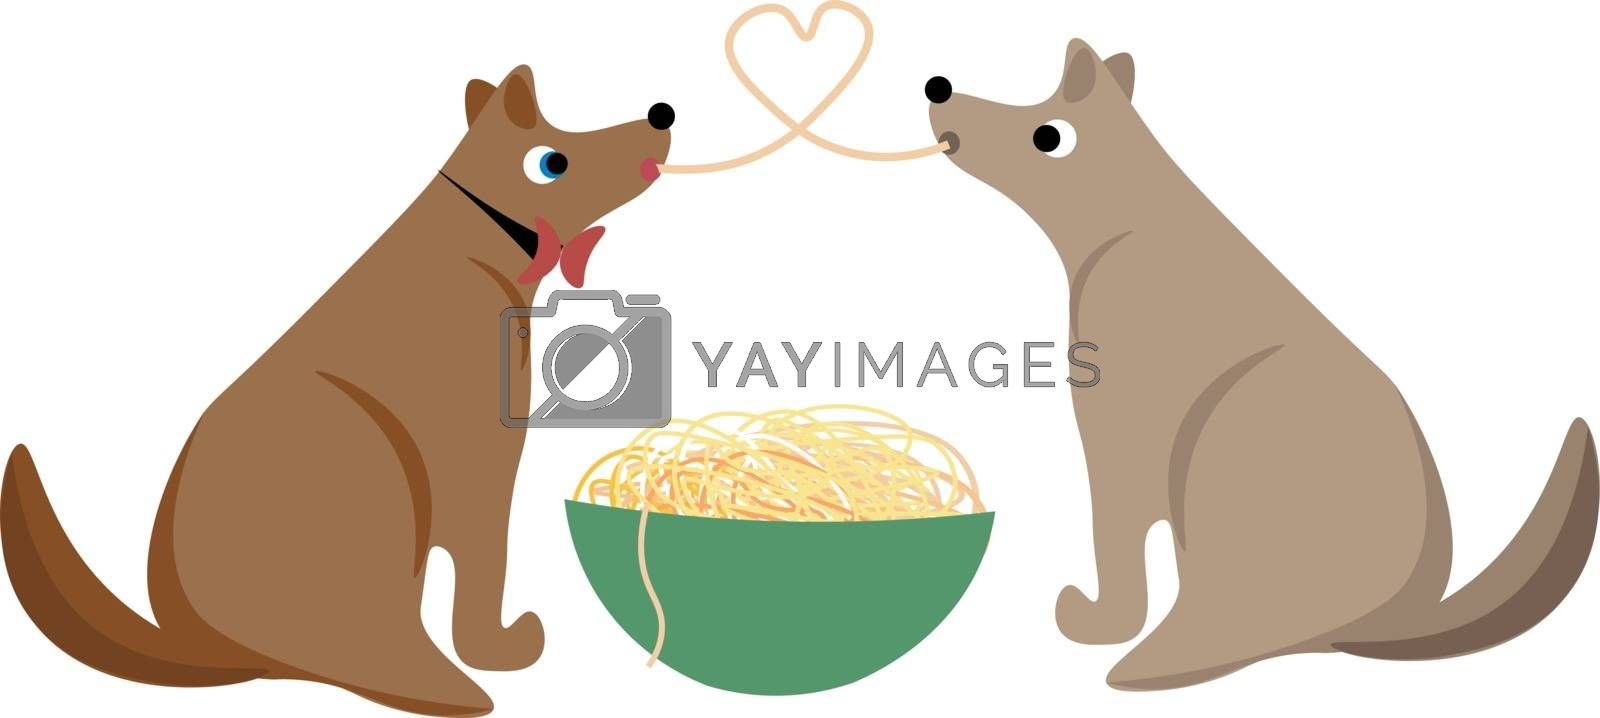 Royalty free image of Two dogs sharing spaghetti as they eat from the same giant bowl  by Morphart